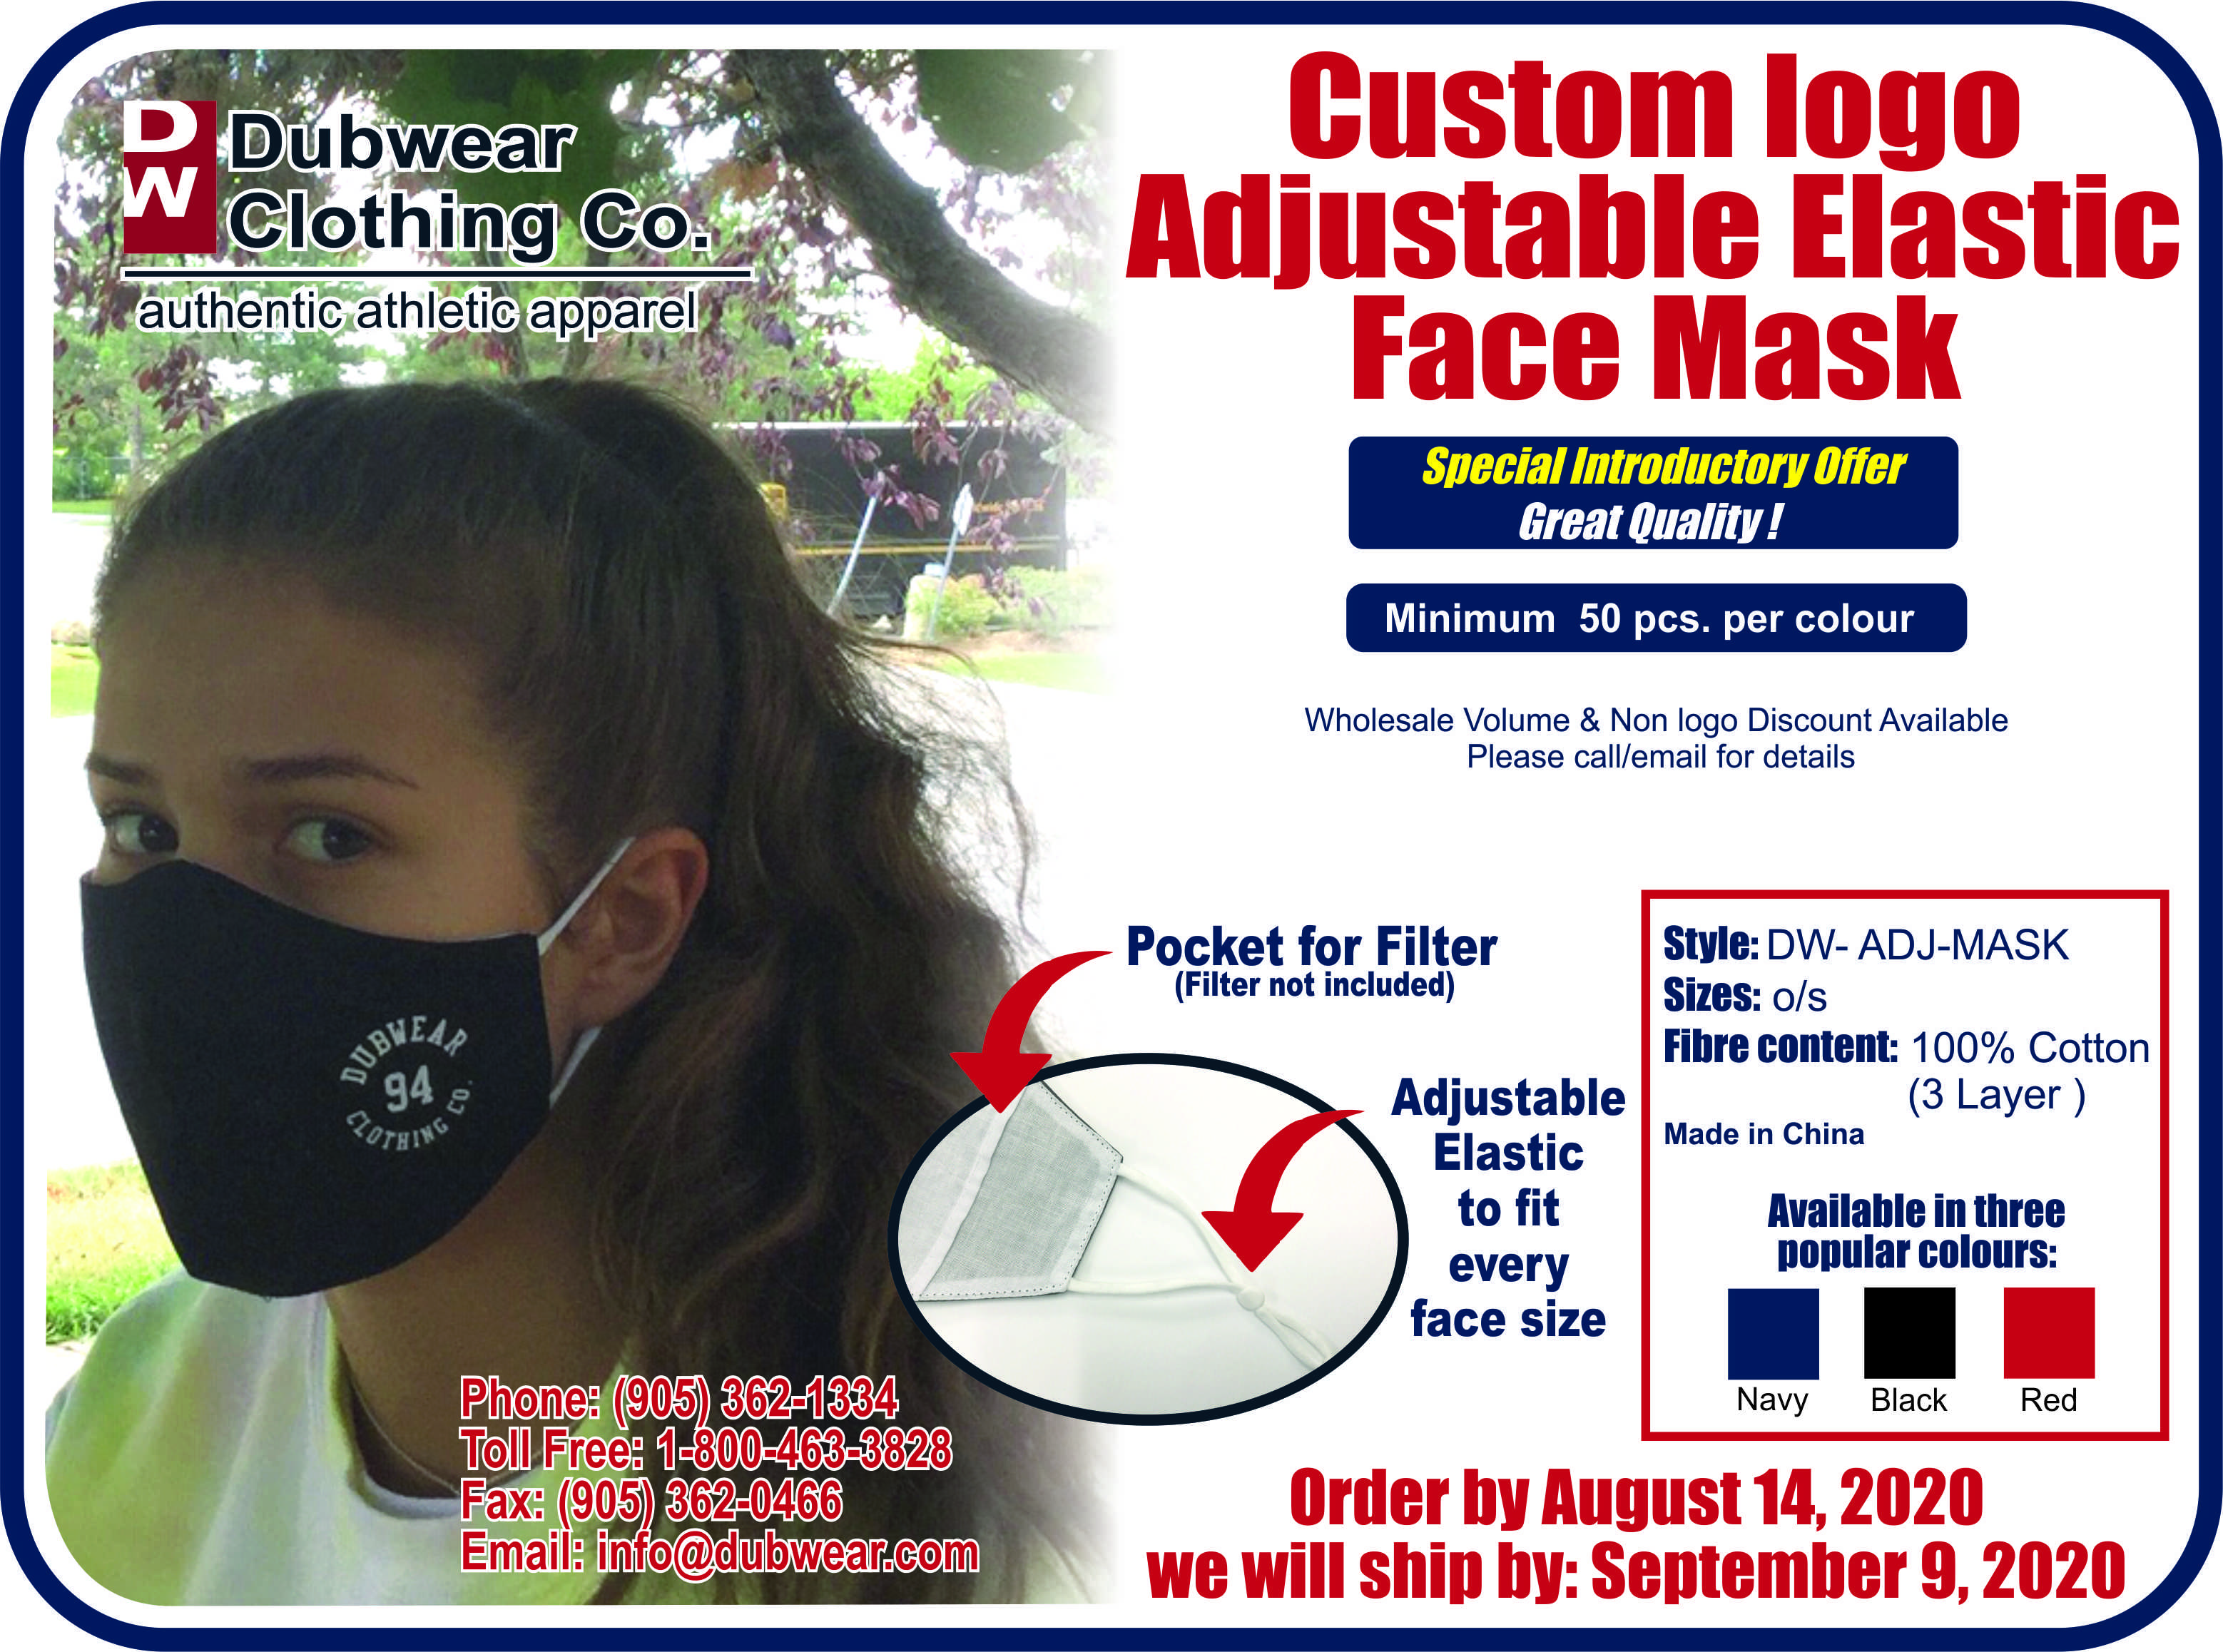 Dubwear Adjustable Custom Mask Promo 202